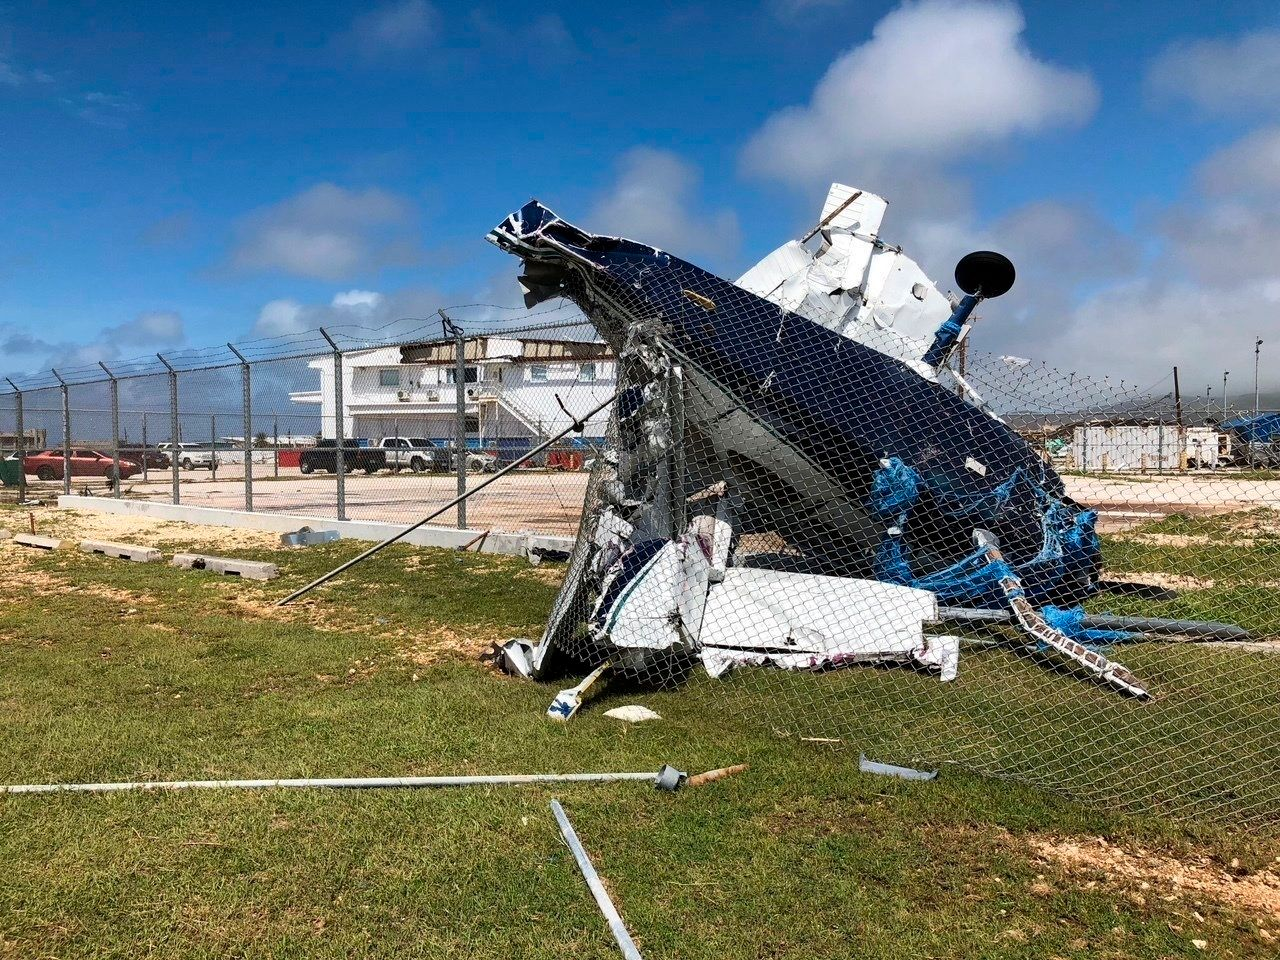 A damaged plane sits at the airport after Super Typhoon Yutu hit the U.S. Commonwealth of the Northern Mariana Islands on Friday.